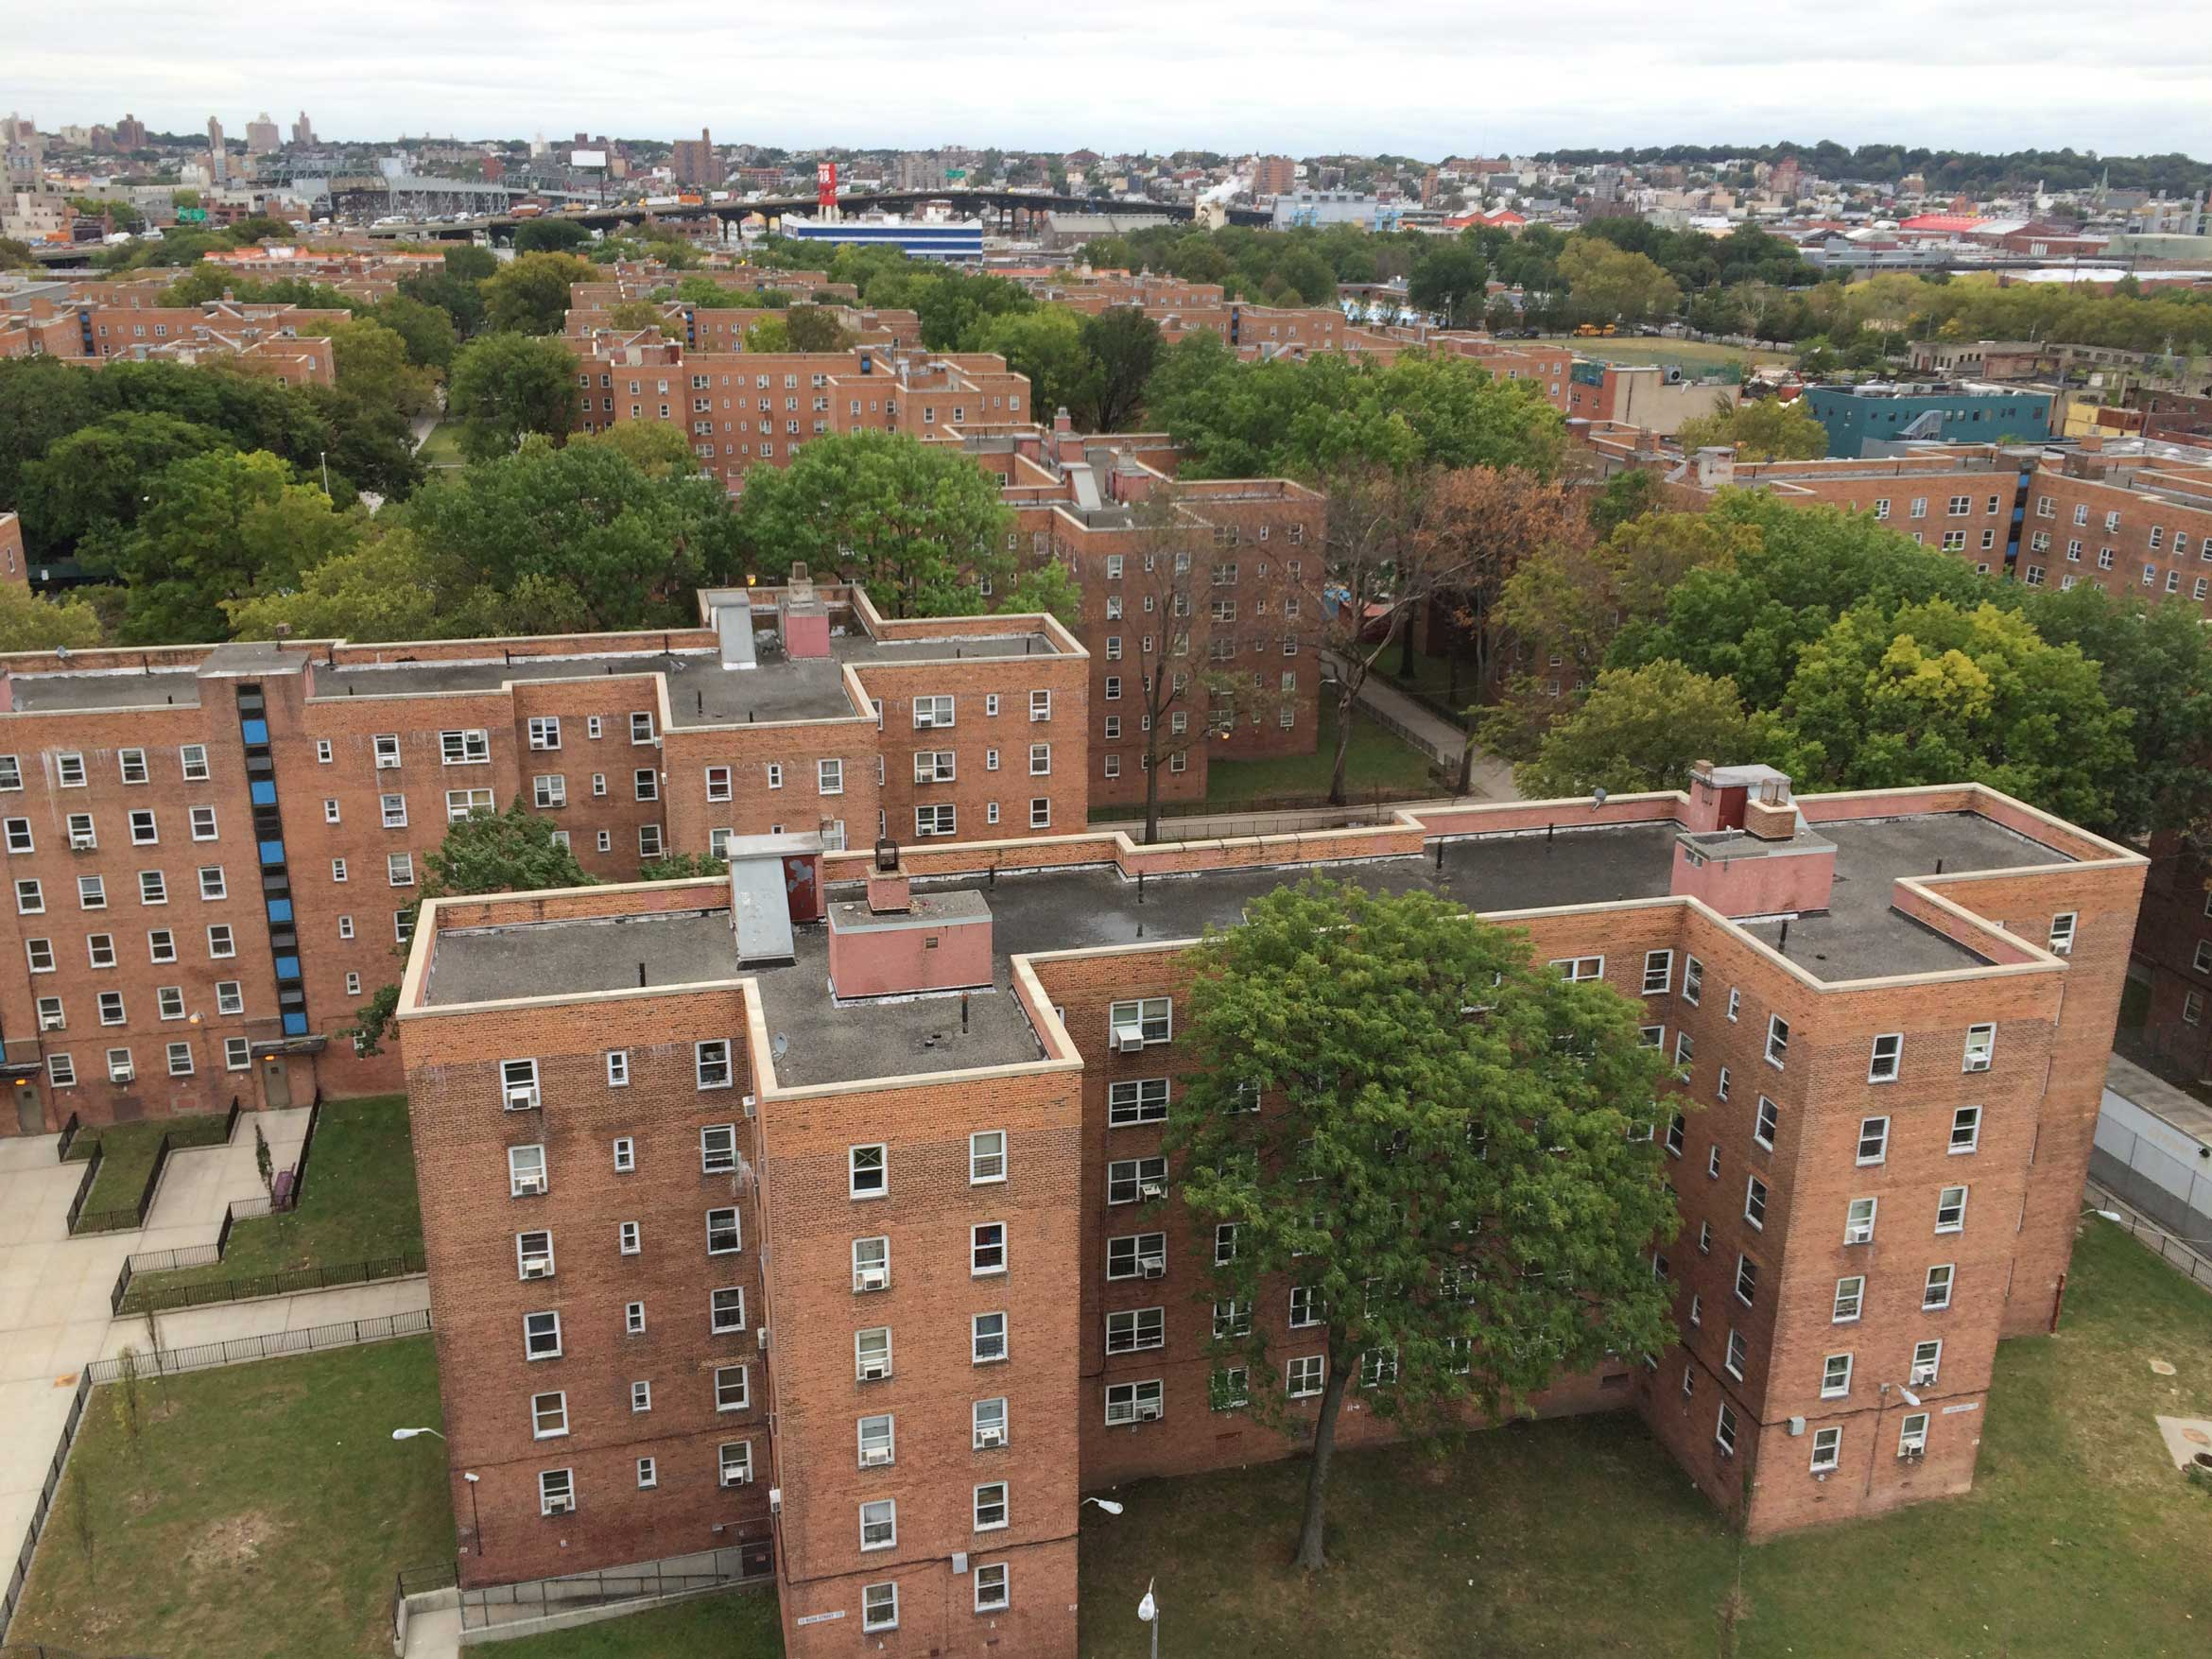 An aerial view of the Red Hook Houses showing mature trees as well as the ubiquitous fences around green spaces. Photo courtesy of KPF and OLIN